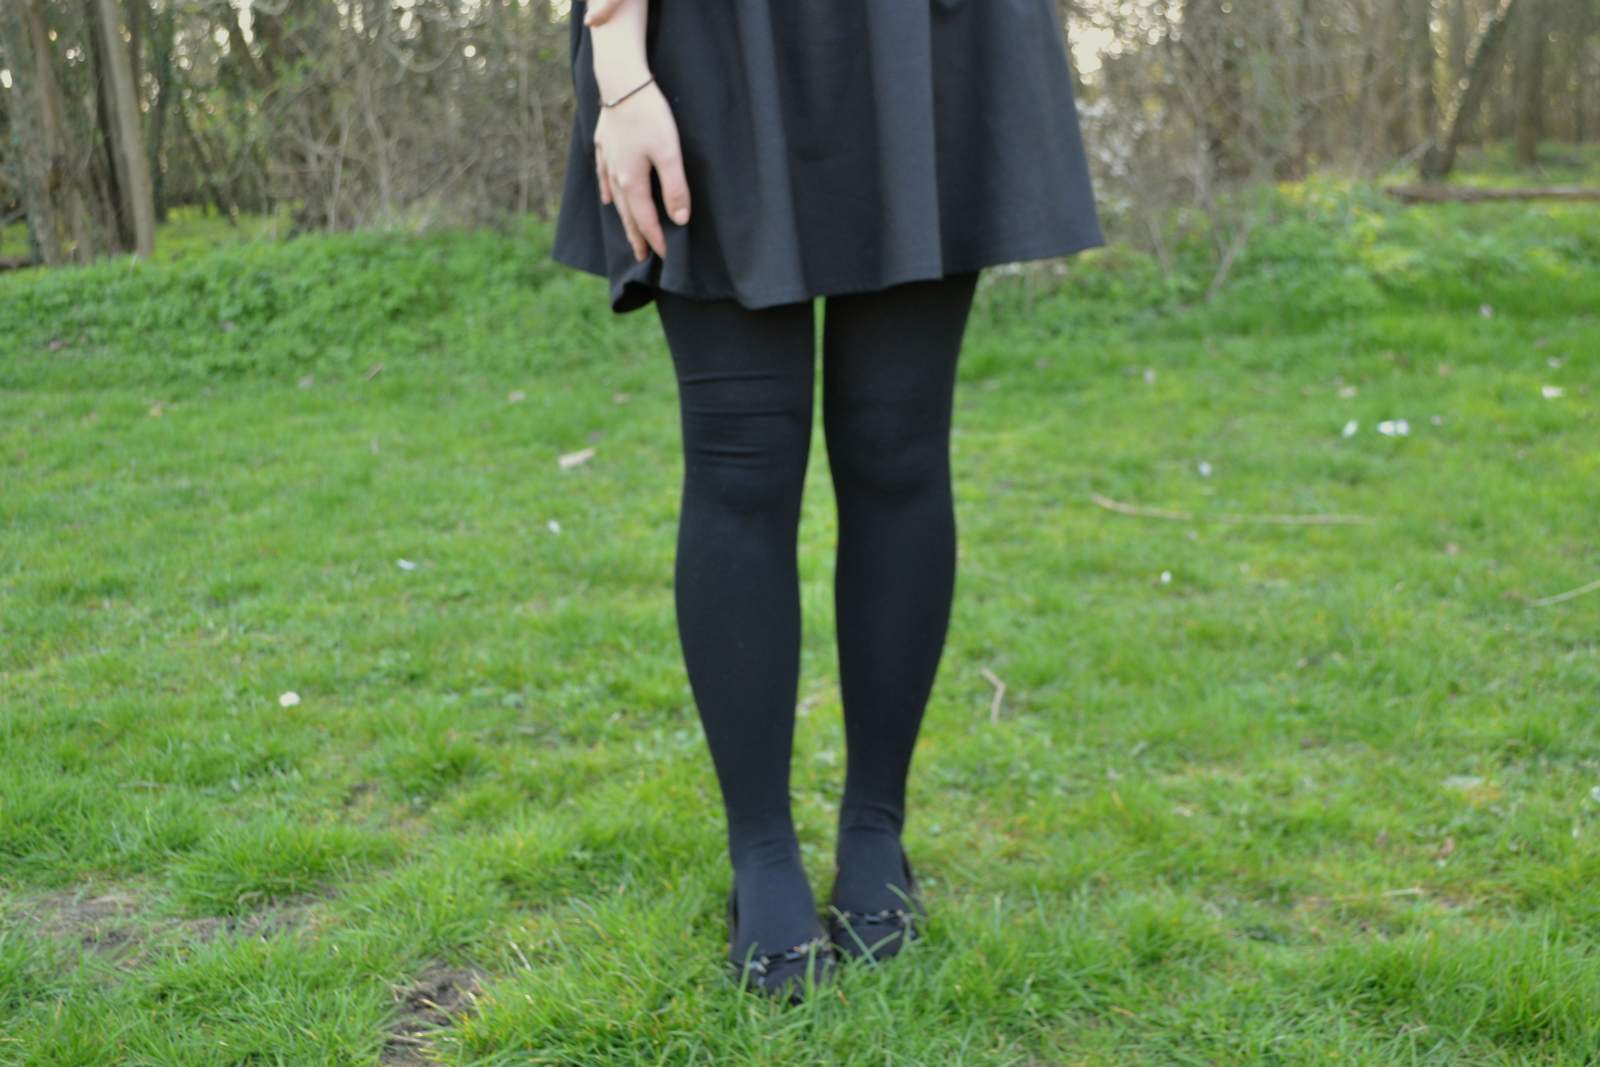 daisybutter - UK Style Blog: what i wore, skater skirt, tights and flats, uk fashion blogger